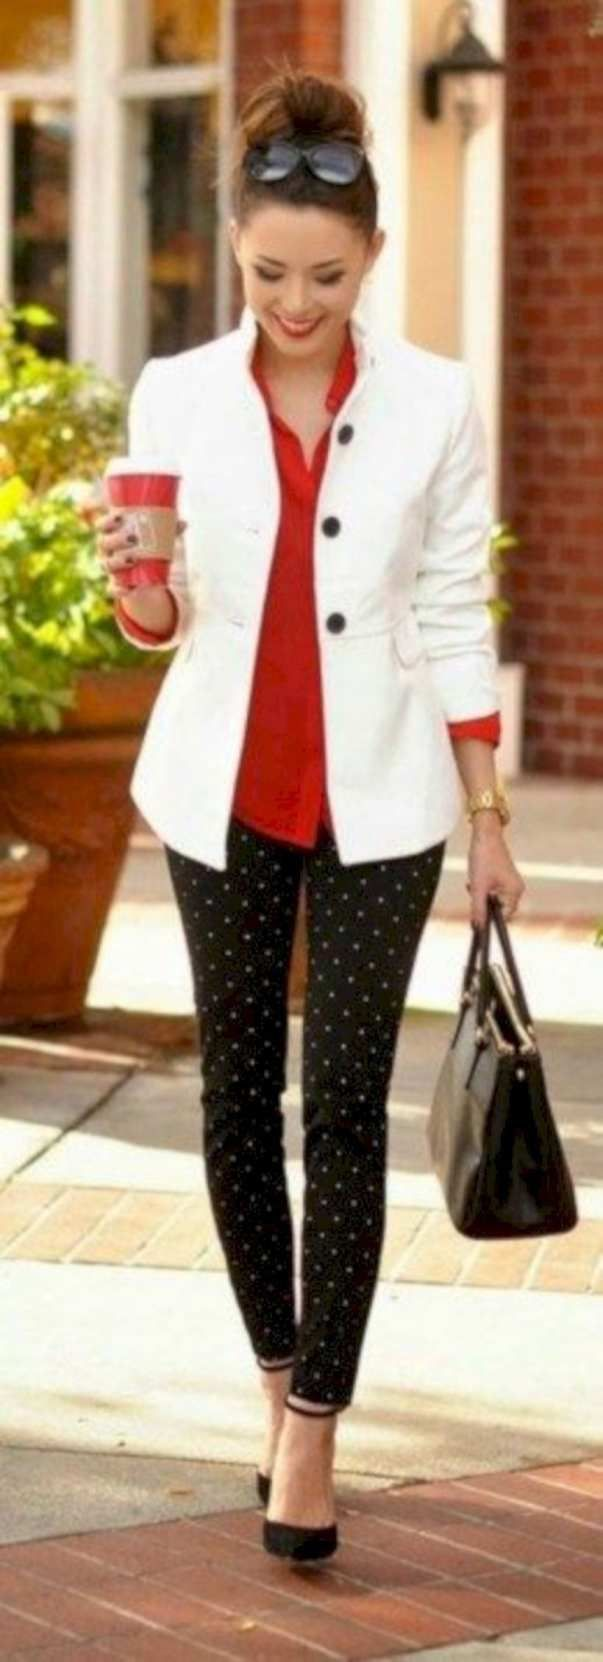 Casual fall work outfits ideas 2018 52